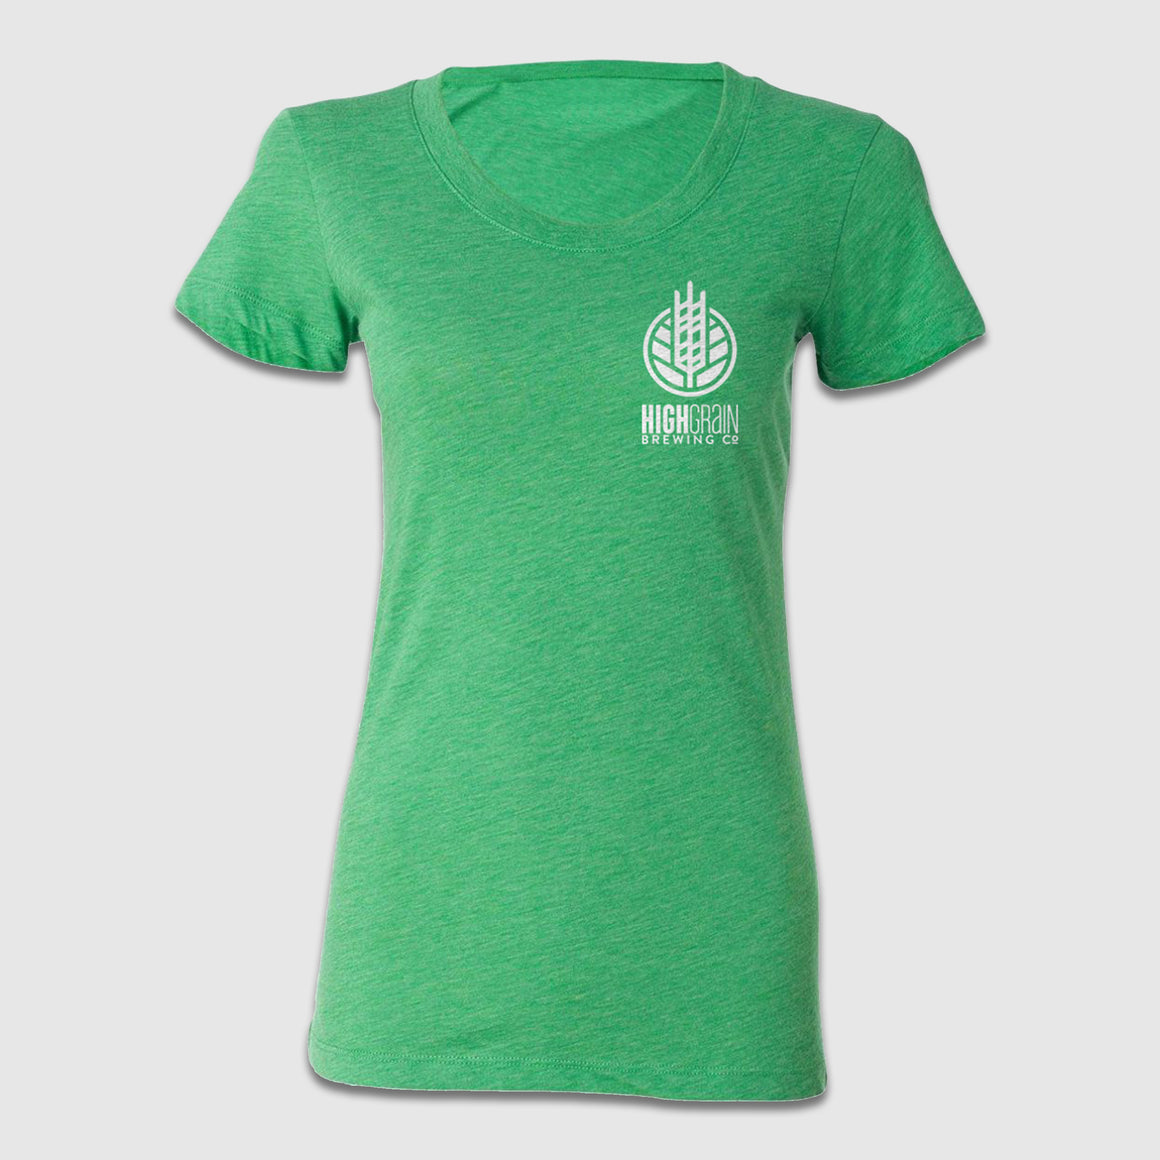 Women's Scoop Neck High Grain Pocket Logo Front & Back Design - Cincy Shirts